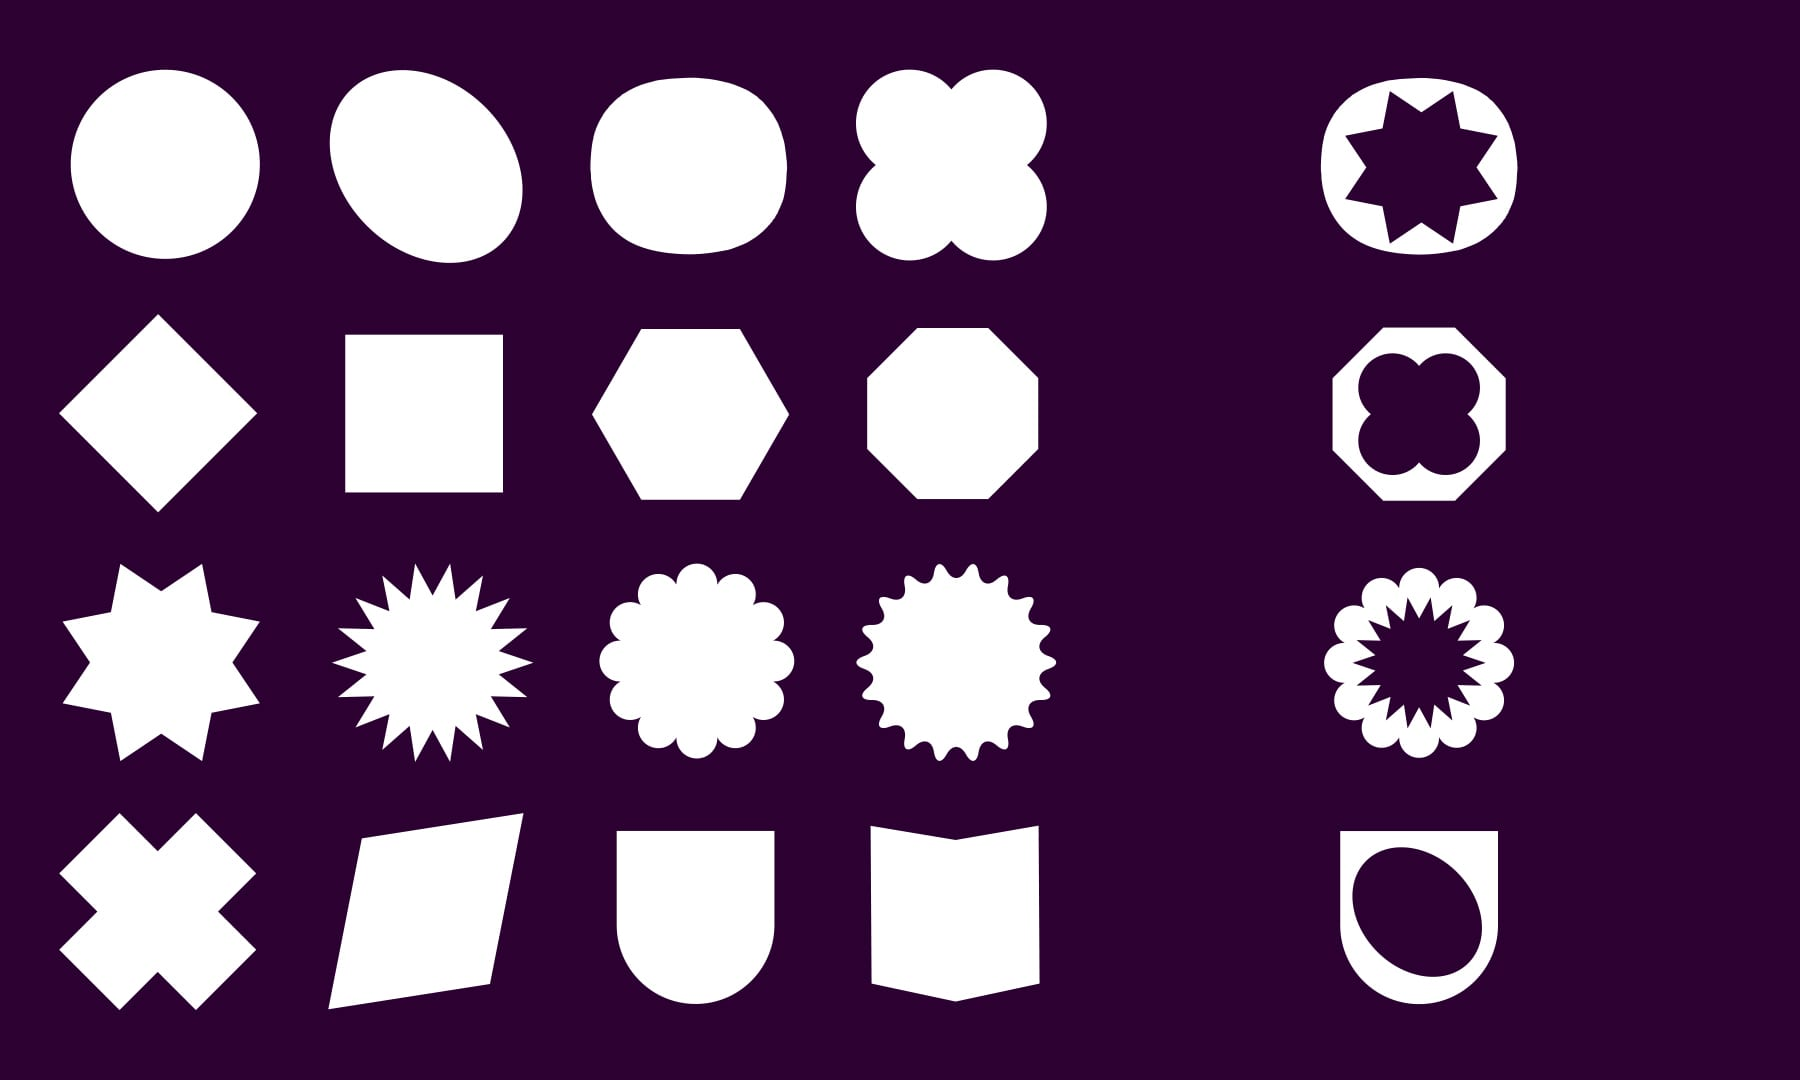 Royal Designers for Industry Pattern explained